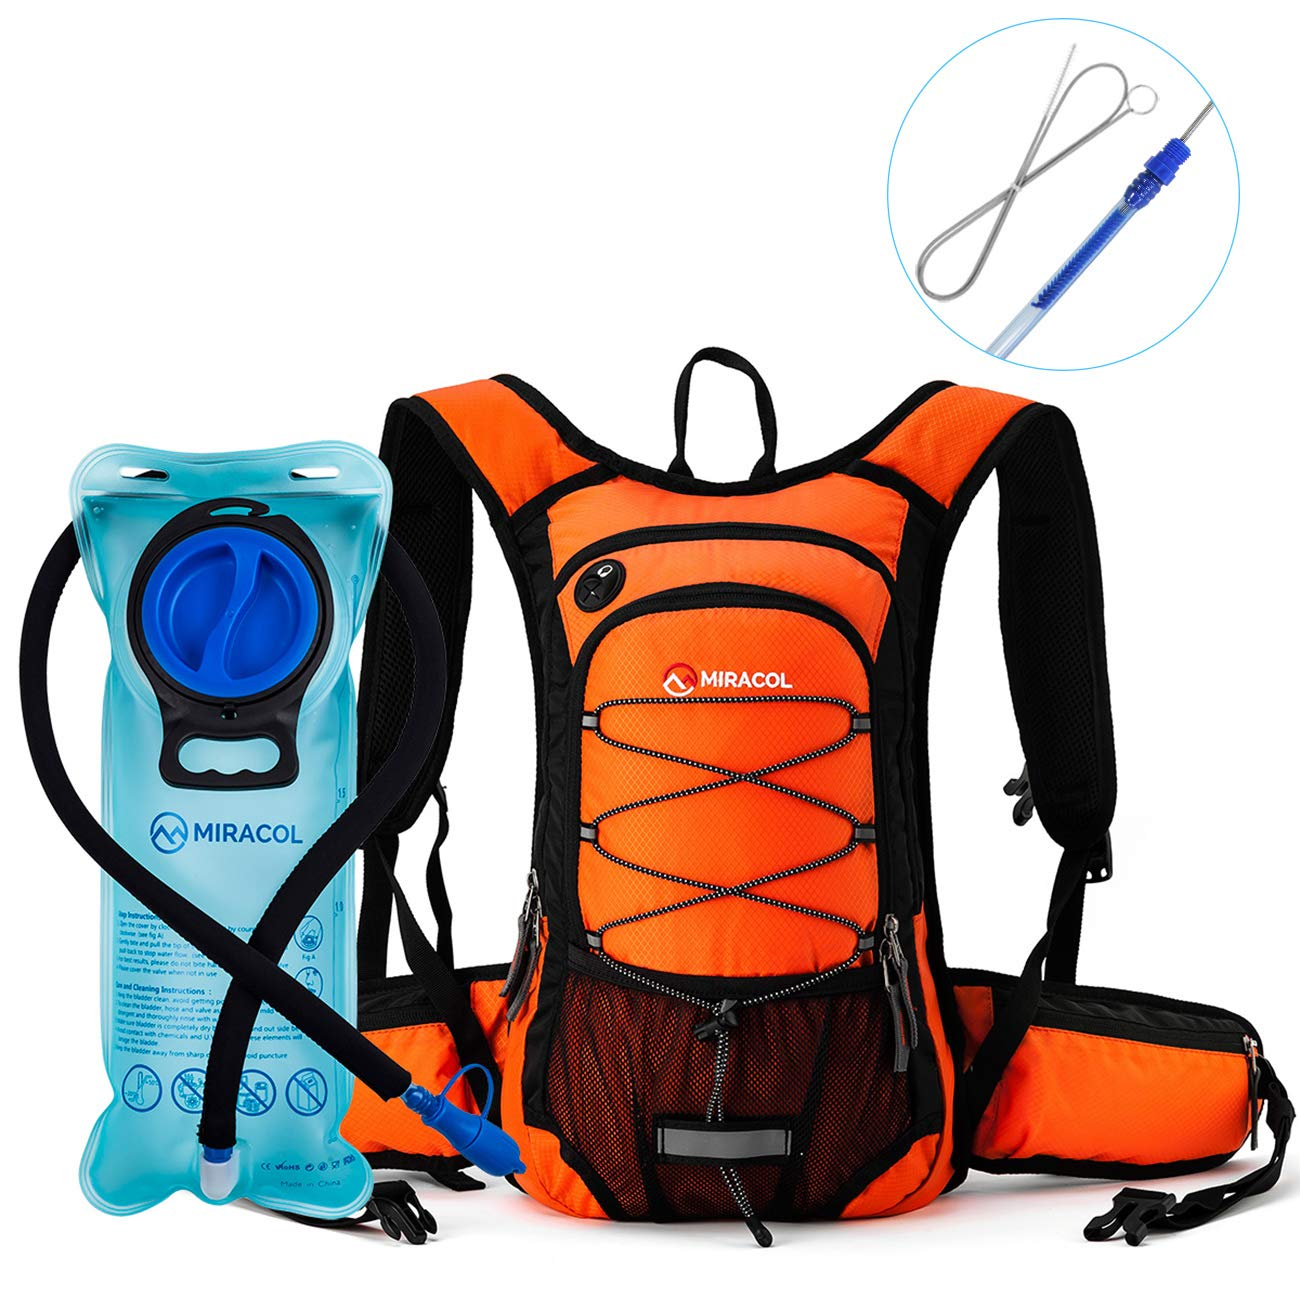 MIRACOL Hydration Bladder 2 Liter 70 oz Reservoir Best Cycling Hiking Camping Backpack